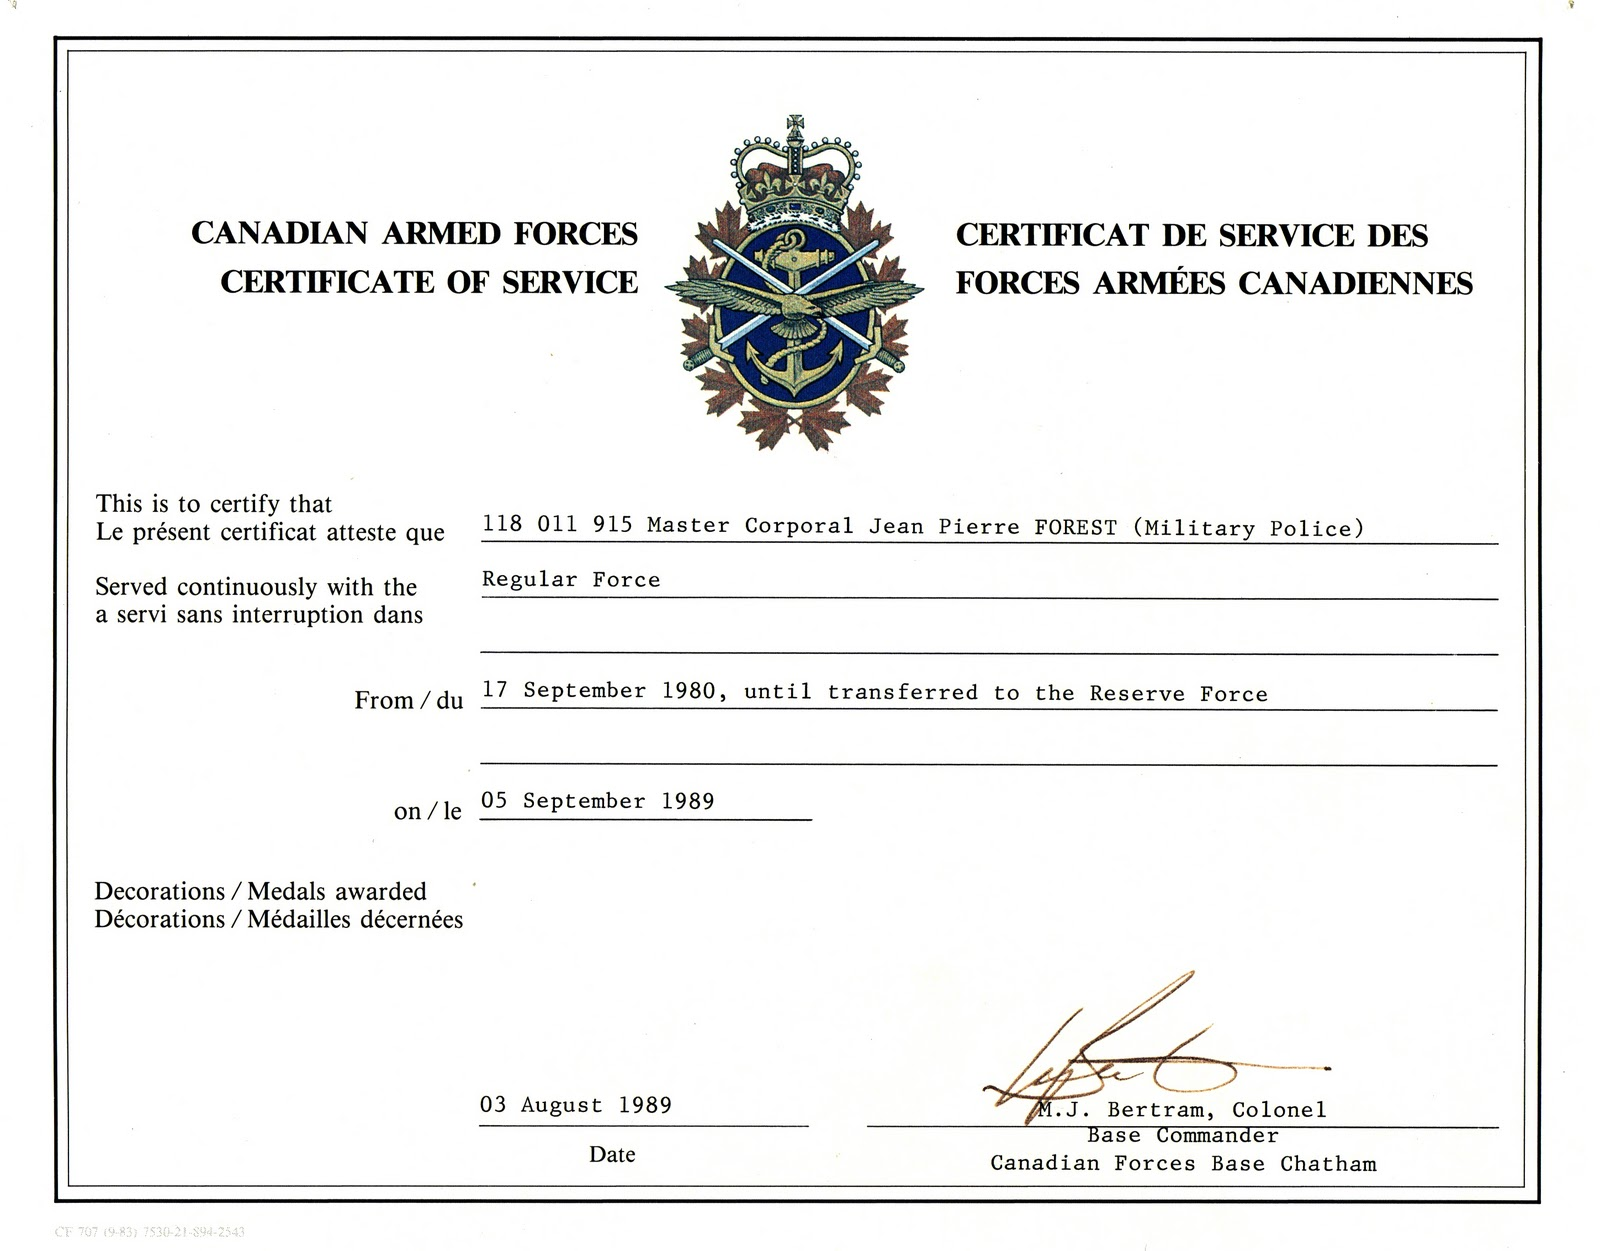 Jean pierrej p forest cpp a few certificates an error occurred xflitez Image collections